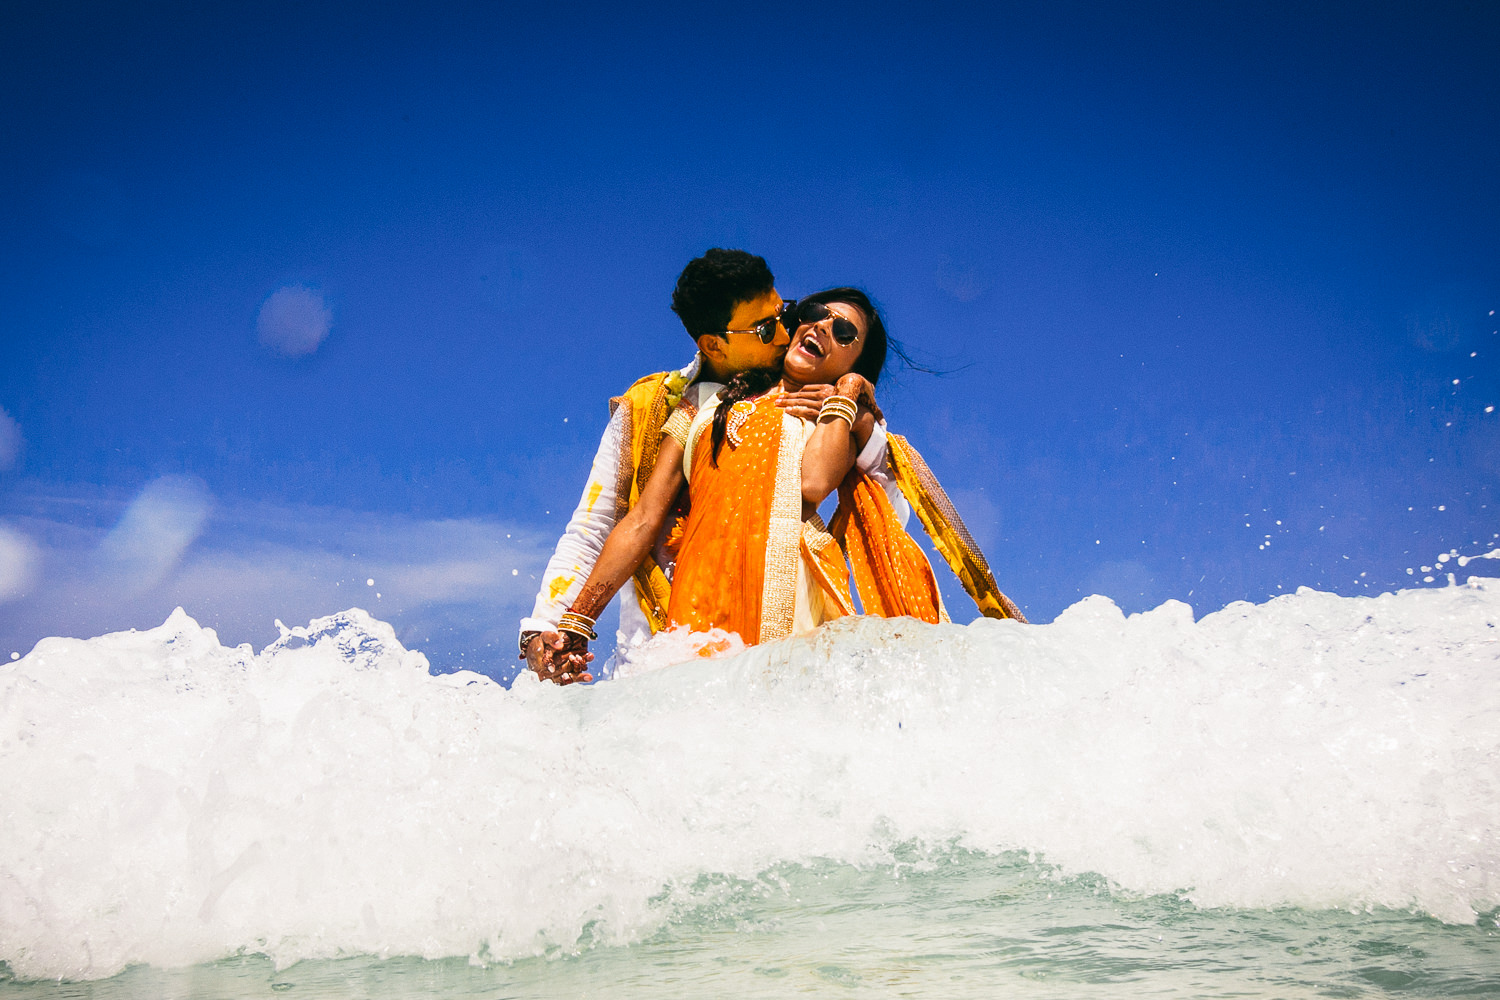 Paradisus Cancun Indian Wedding - Joy in the waves